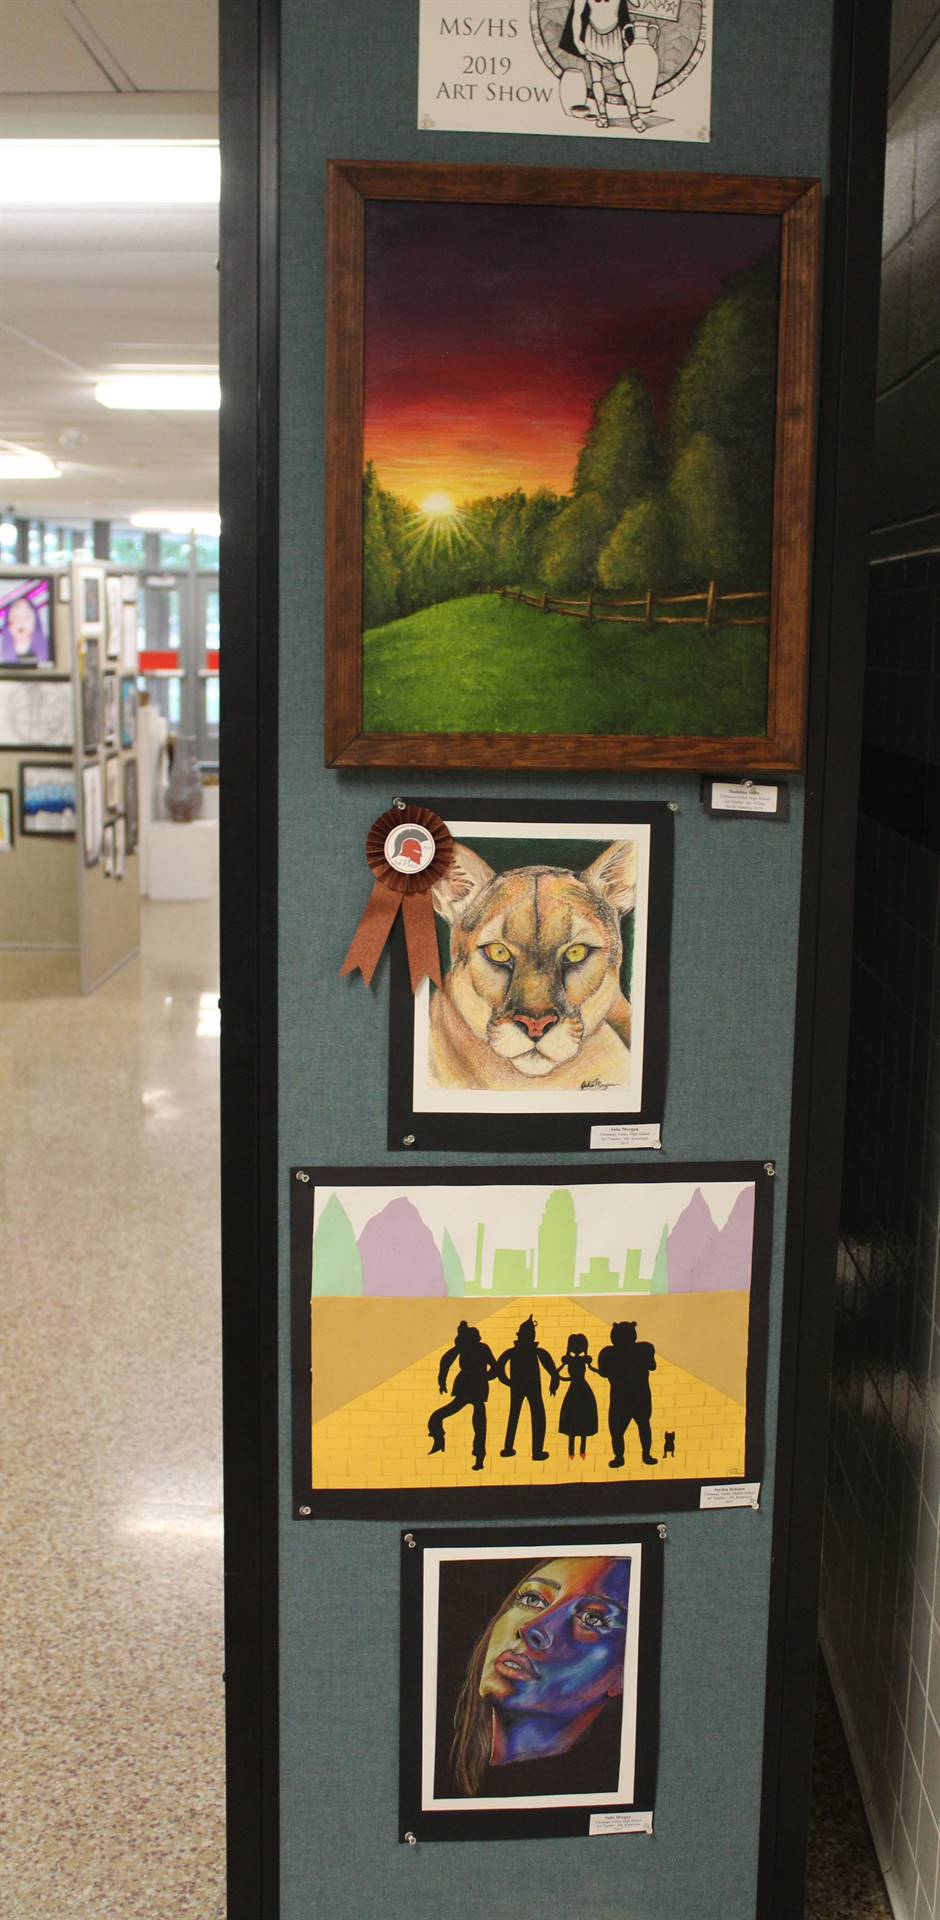 2019 Middle School and High School Art Show 34